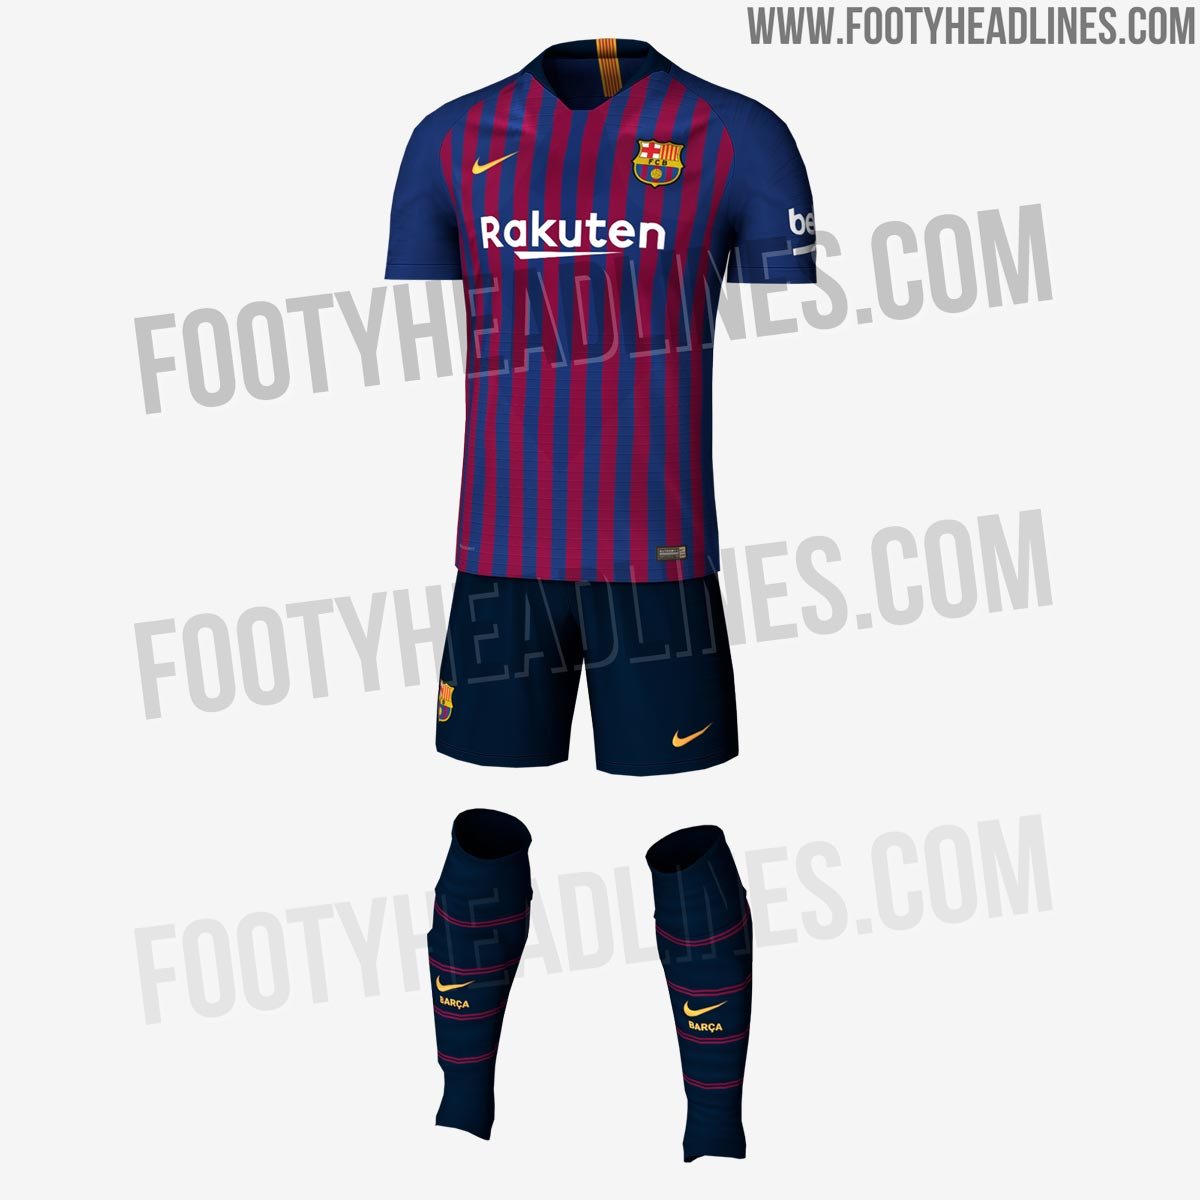 barcelona-18-19-home-kit-2.jpg